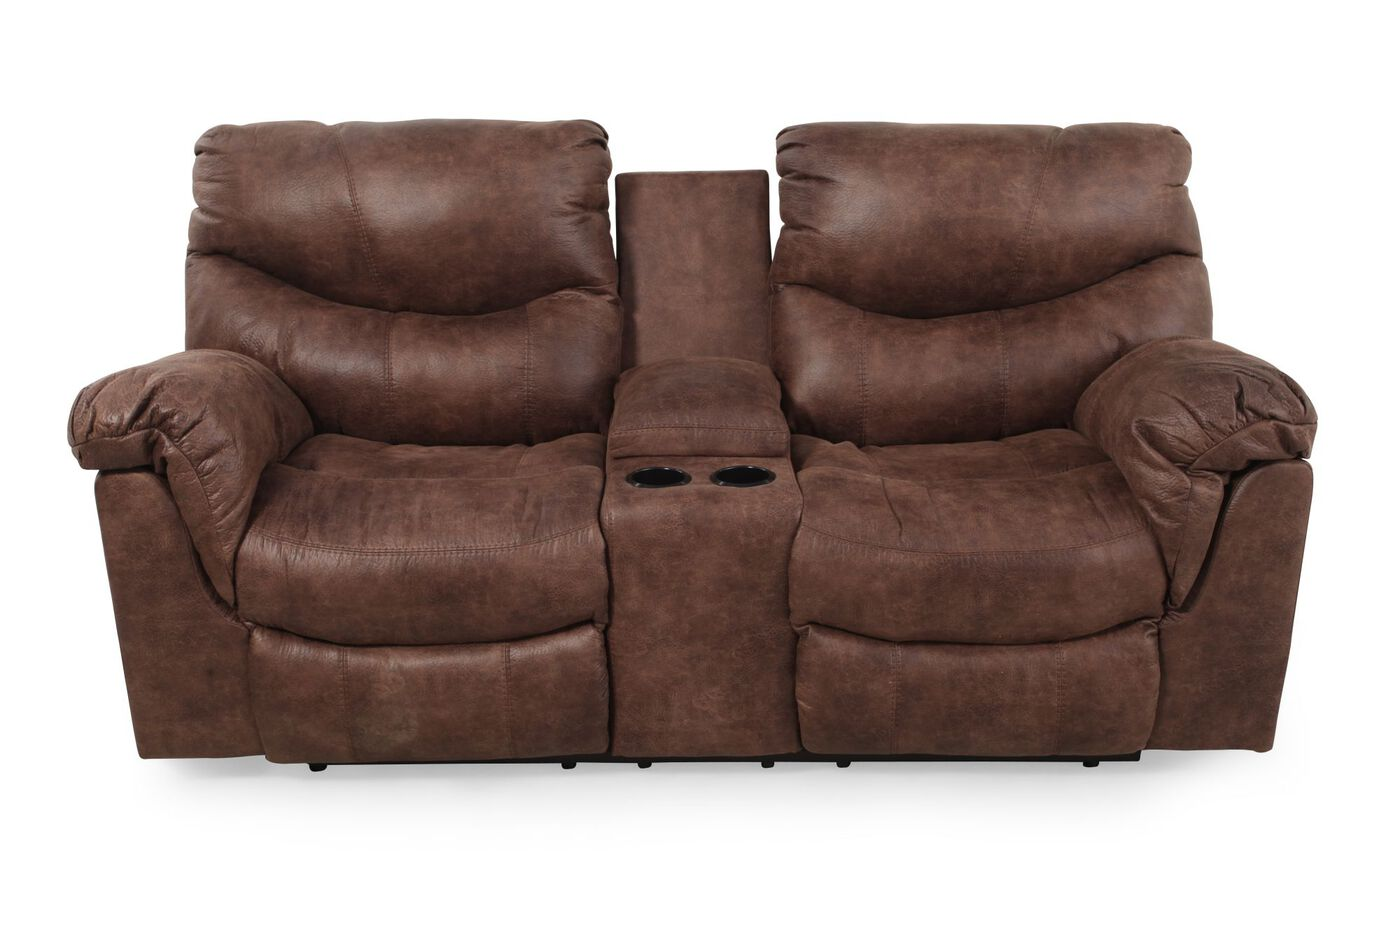 Ashley Alezna Gunsmoke Double Reclining Loveseat With Console Mathis Brothers Furniture